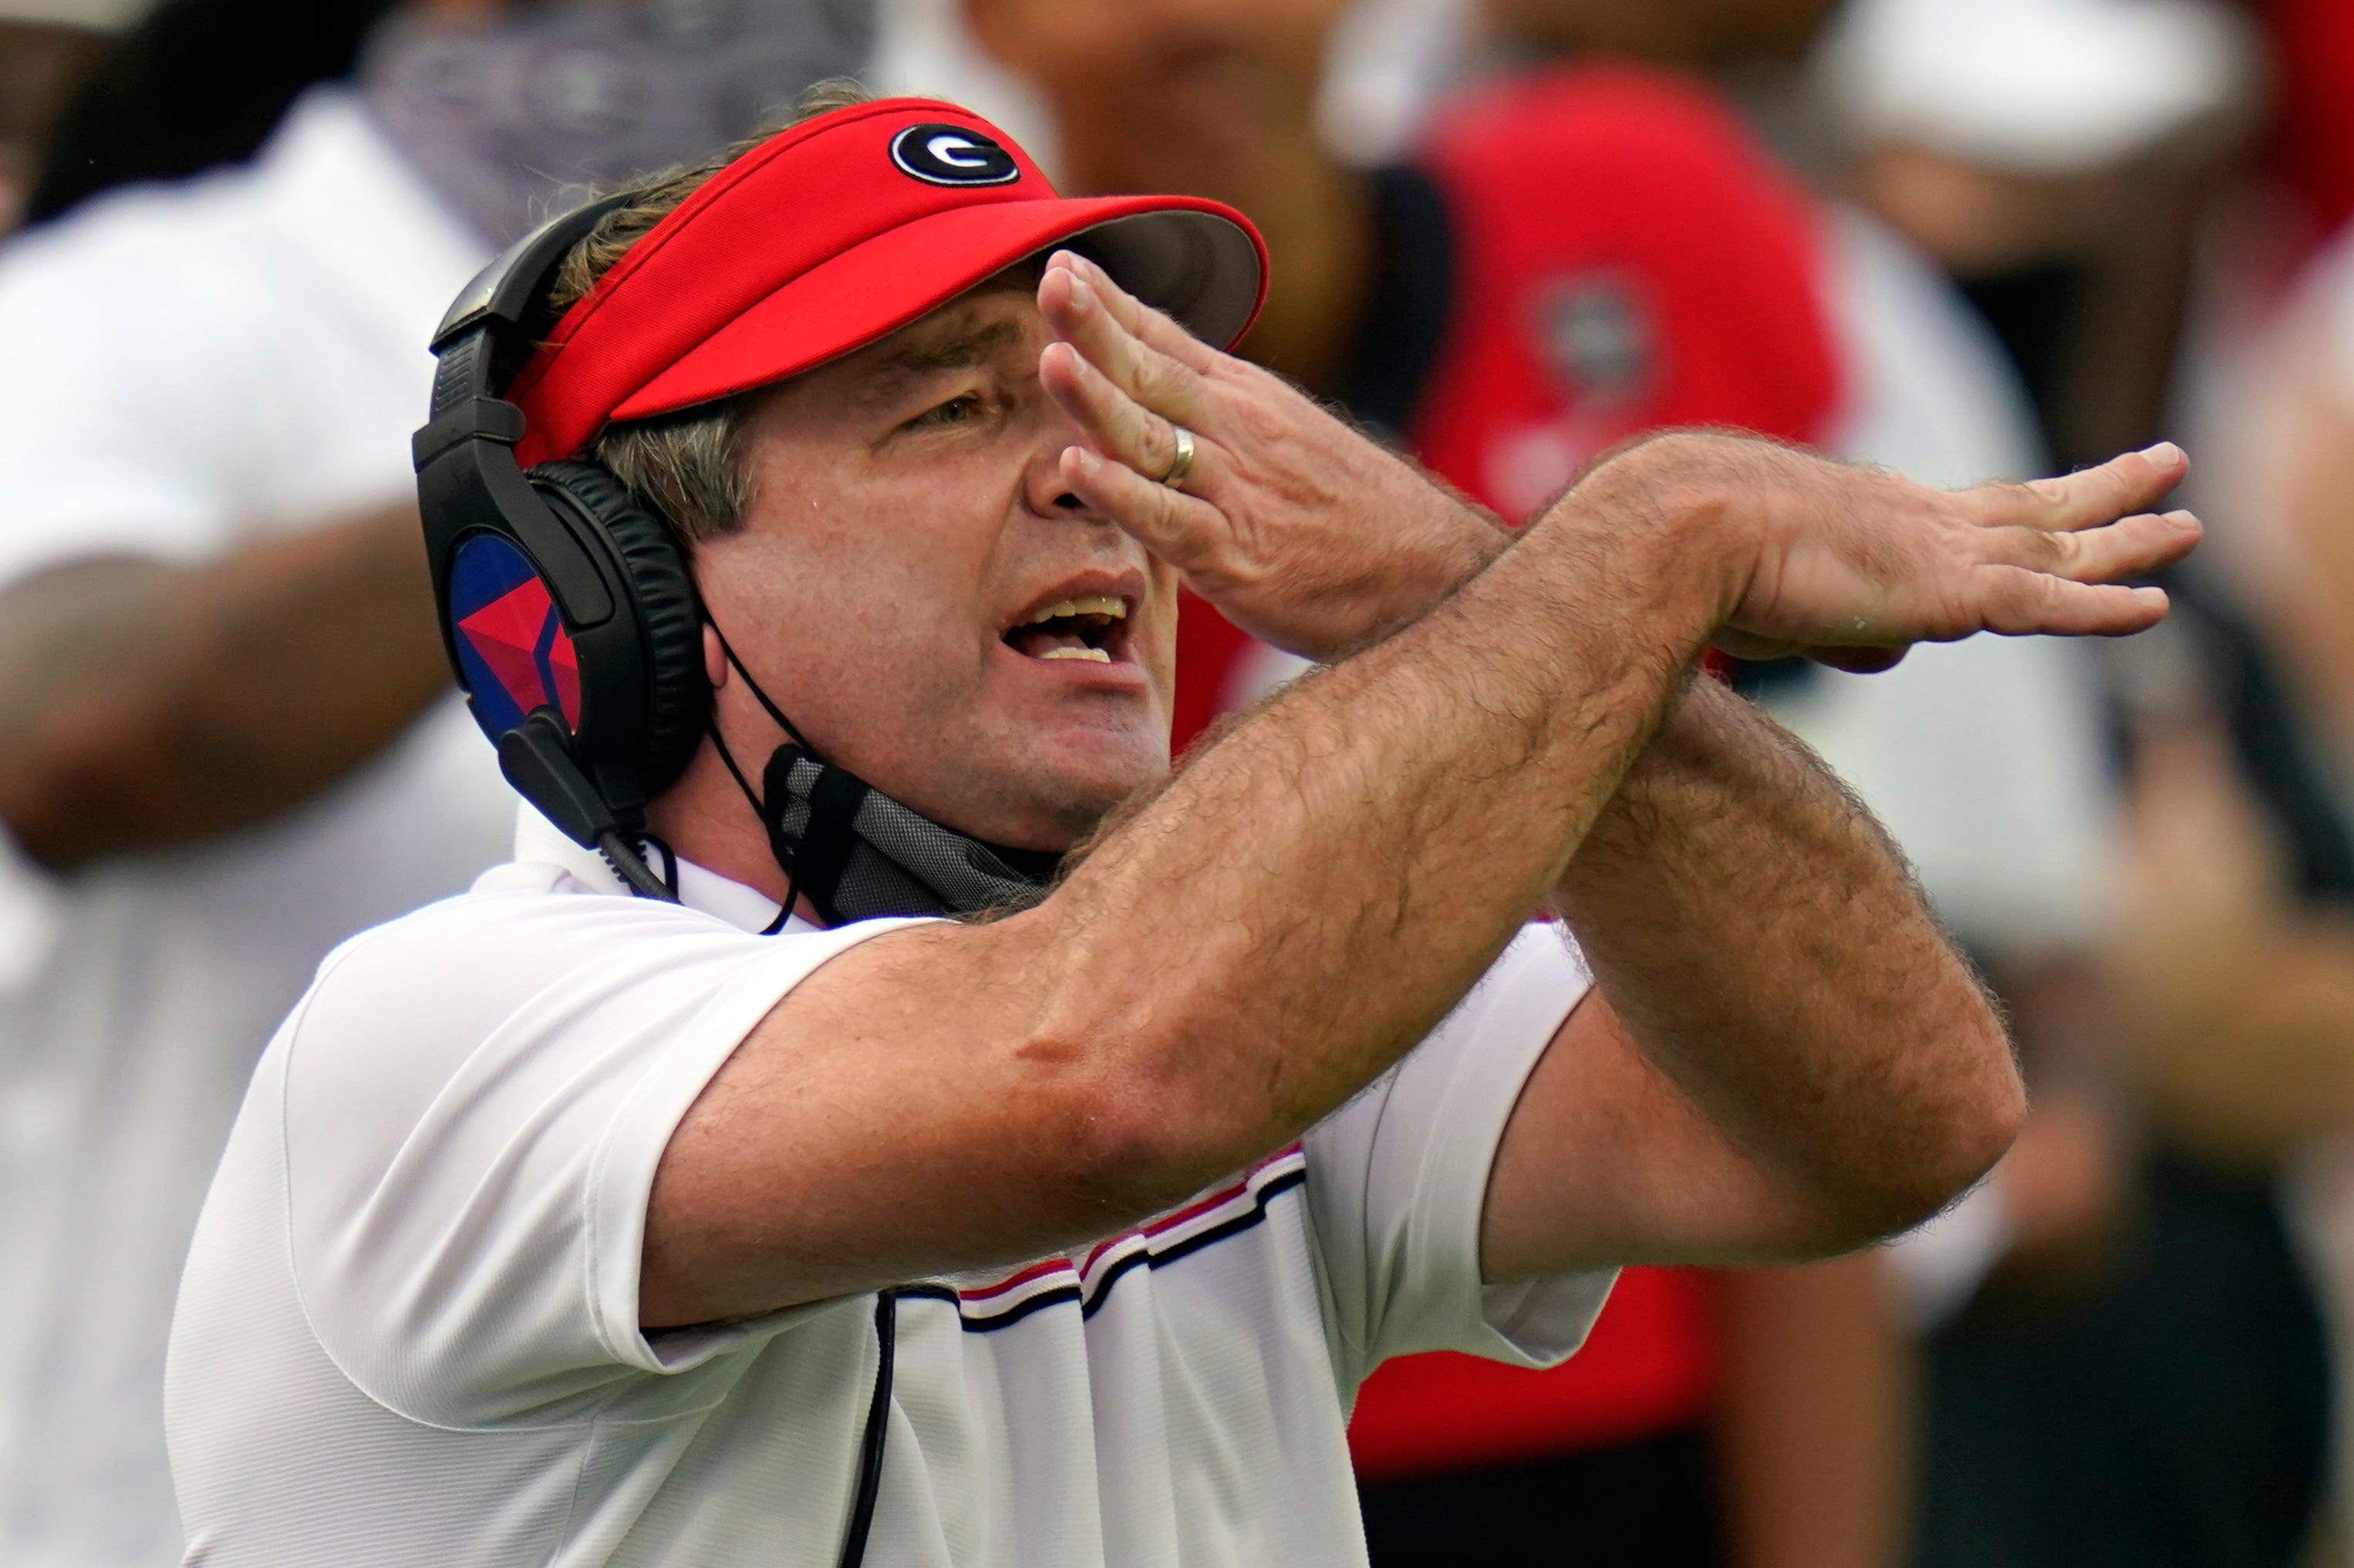 Opinion: Georgia coach Kirby Smart must change Bulldogs' approach before it's too late